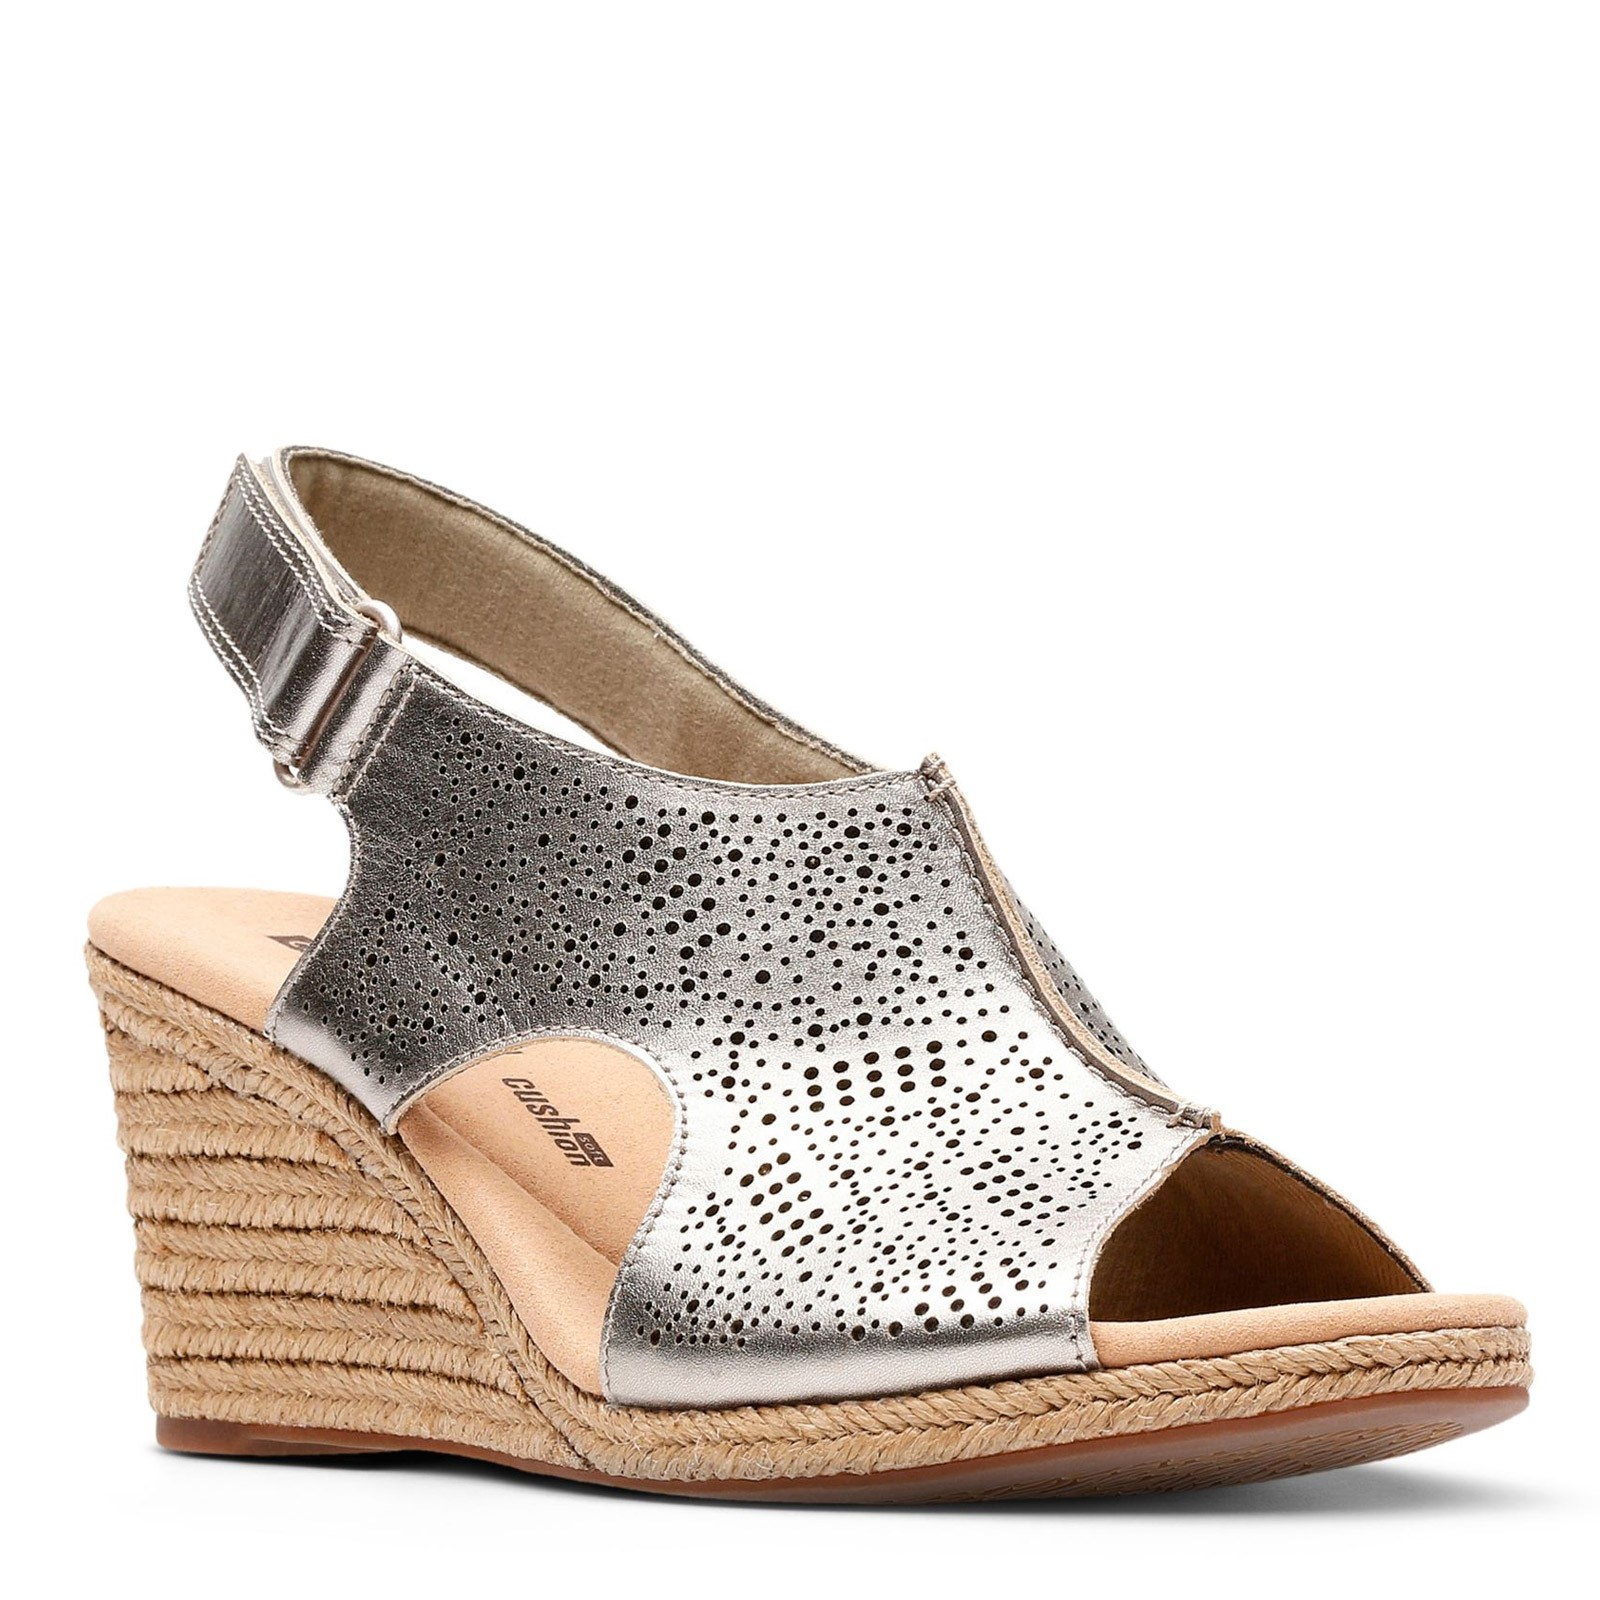 259425bfad Home; Women's Clarks, Lafley Rosen Wedge Sandals. Previous. default view ...